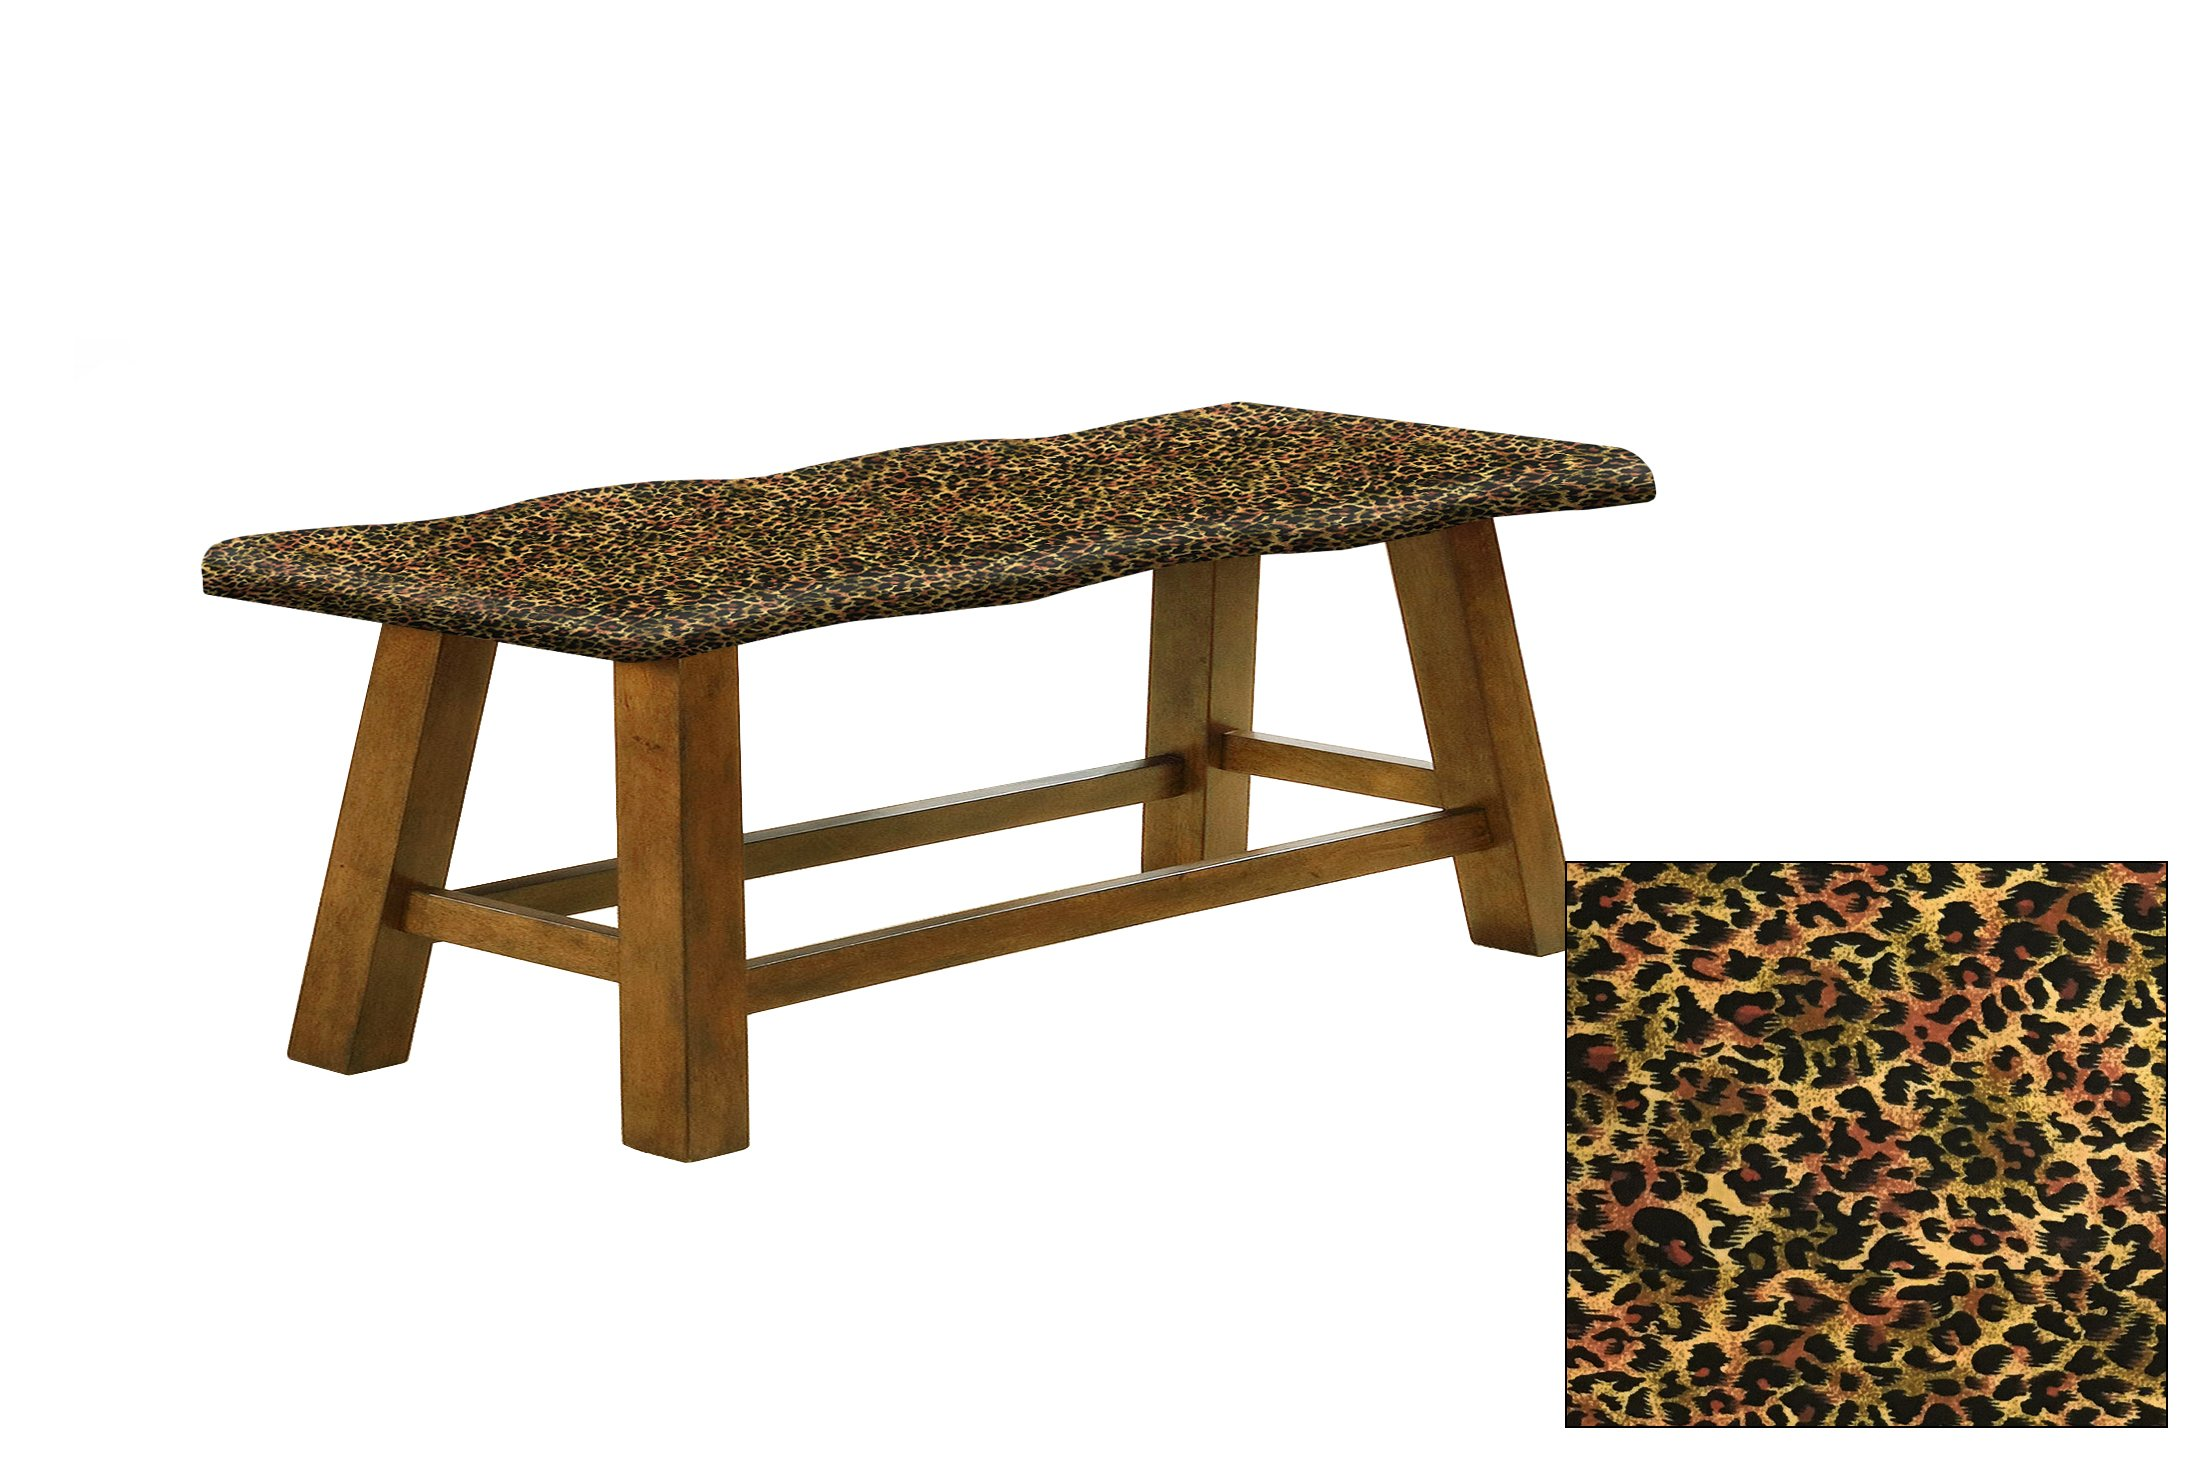 "Honey Oak 24"" Tall Counter Height Wavy Bench Featuring Your Choice of an Animal Print Fabric Covered Padded Seat Cushion (Cheetah Small Cotton)"